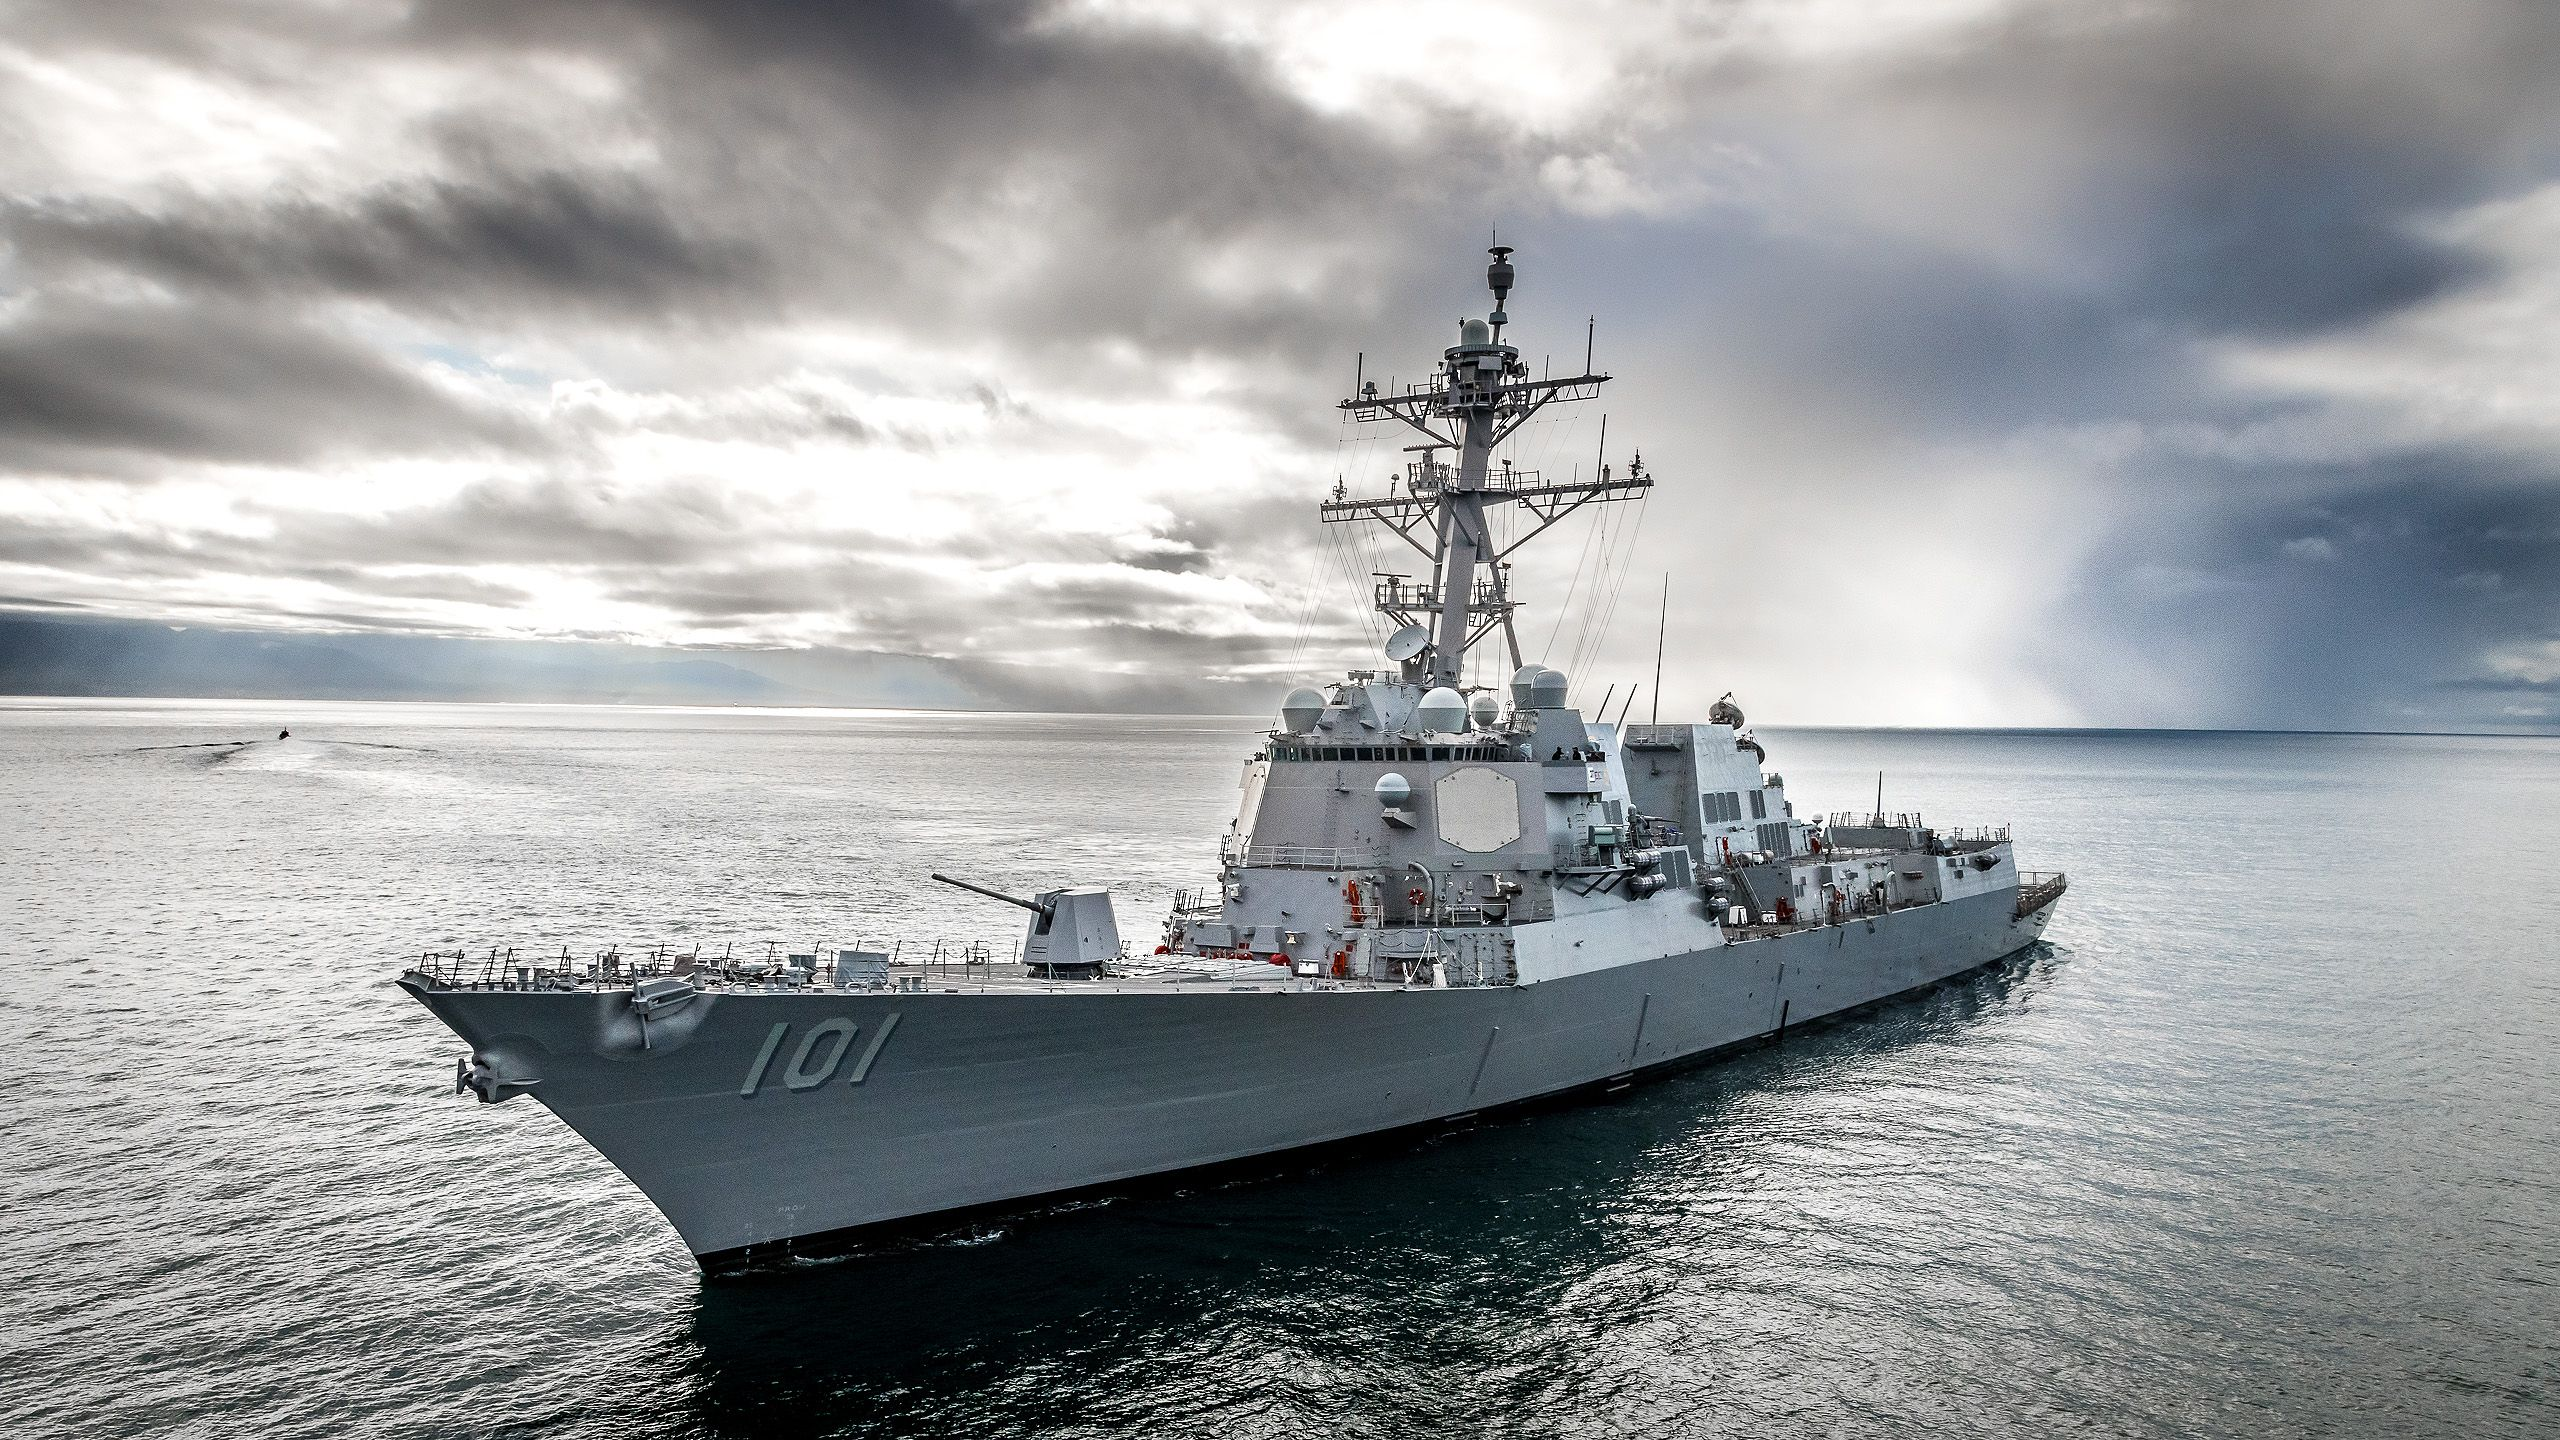 US Navy Destroyer. Sea trials.